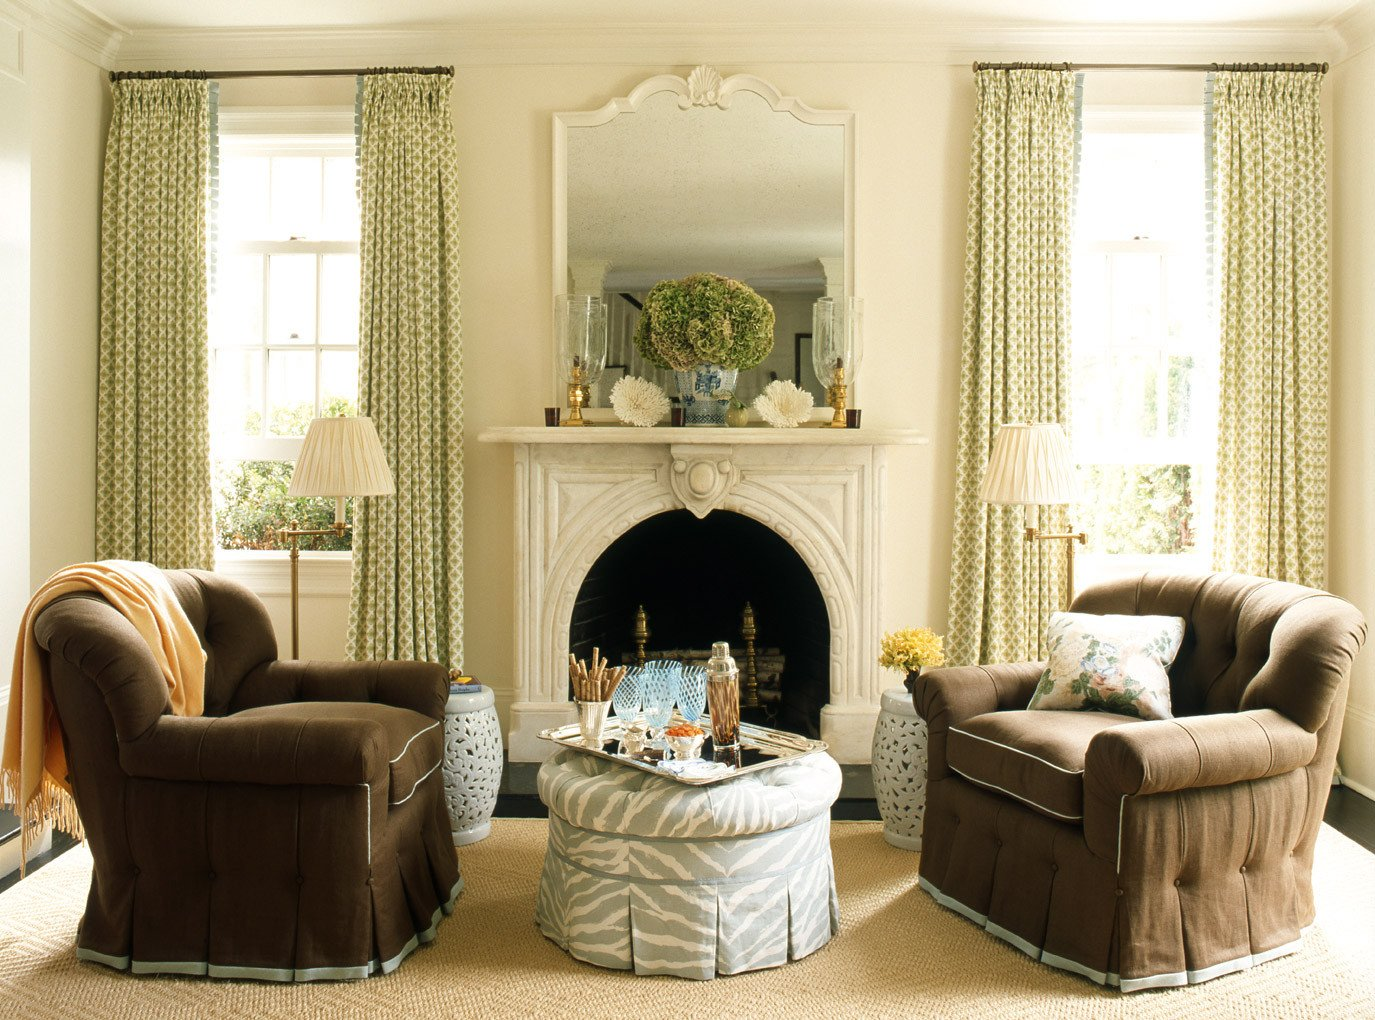 Comfortable Classic Living Room How to Decorate Series Finding Your Decorating Style